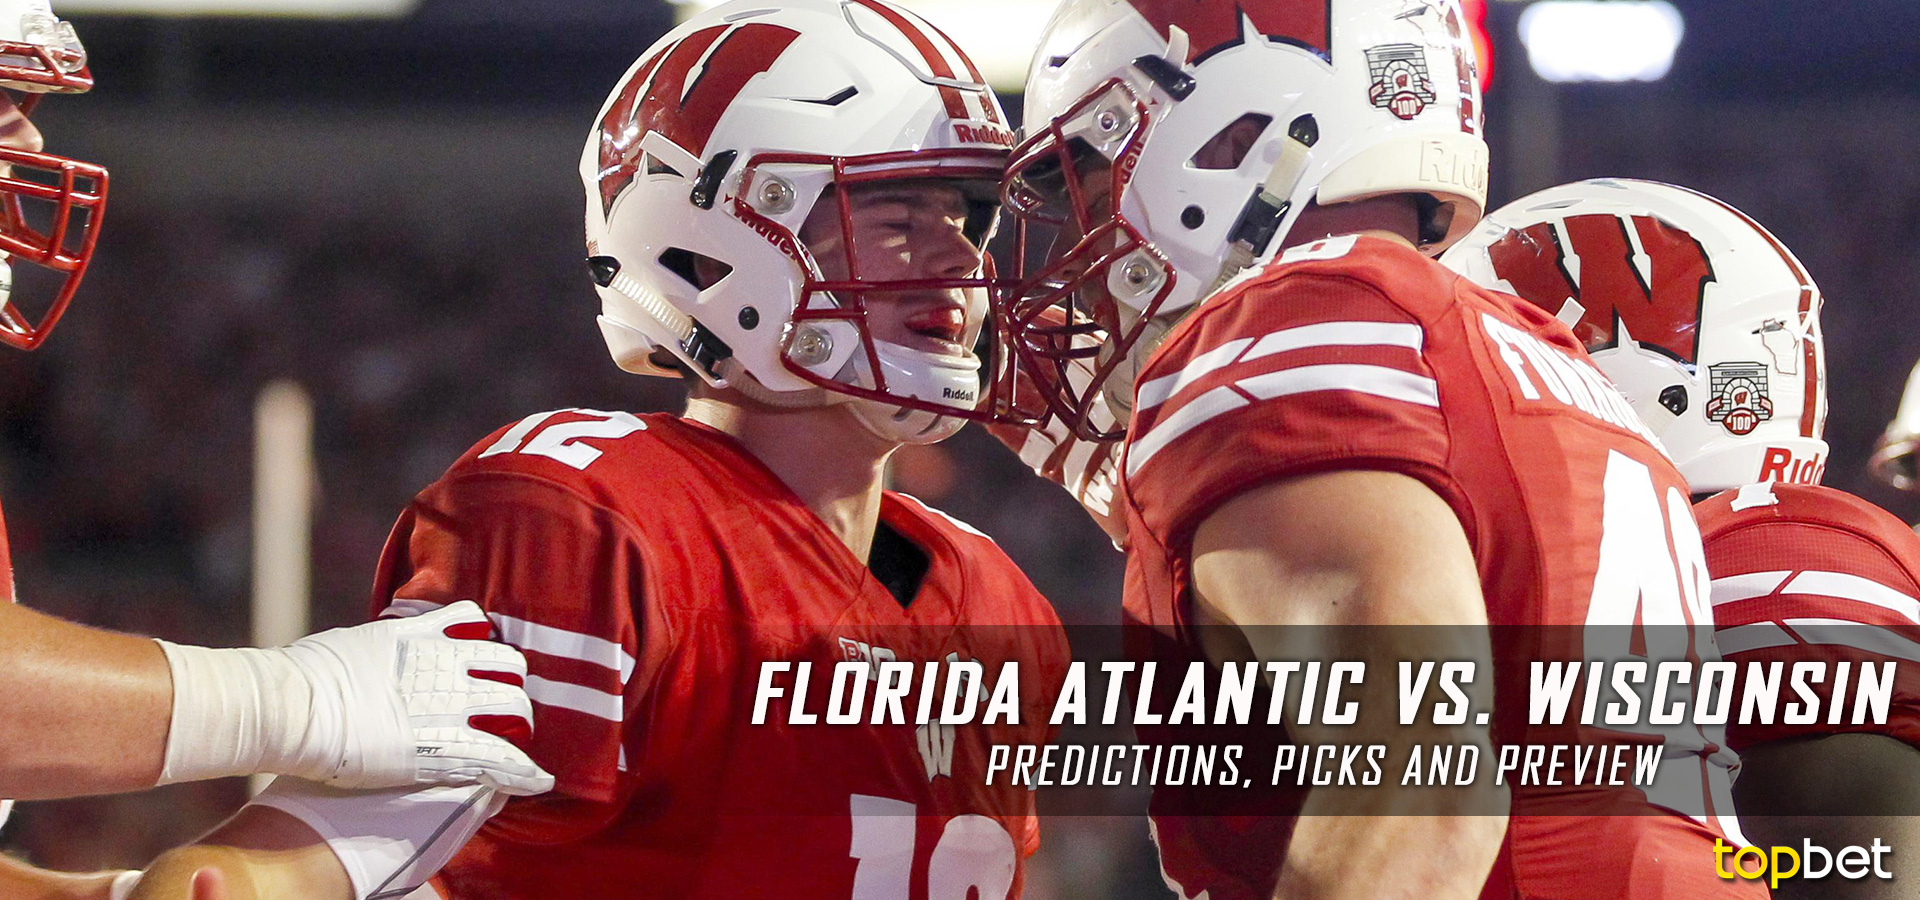 Florida Atlantic vs Wisconsin Football Predictions and Picks d4b6b6d59